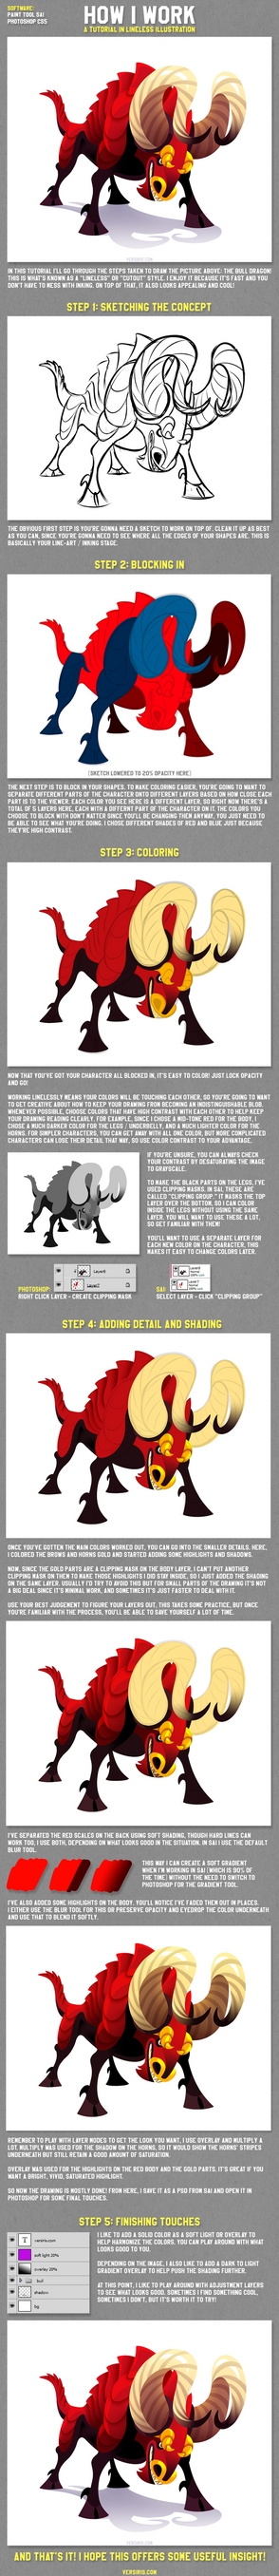 How I Work: A Lineless Illustration Tutorial by Versiris